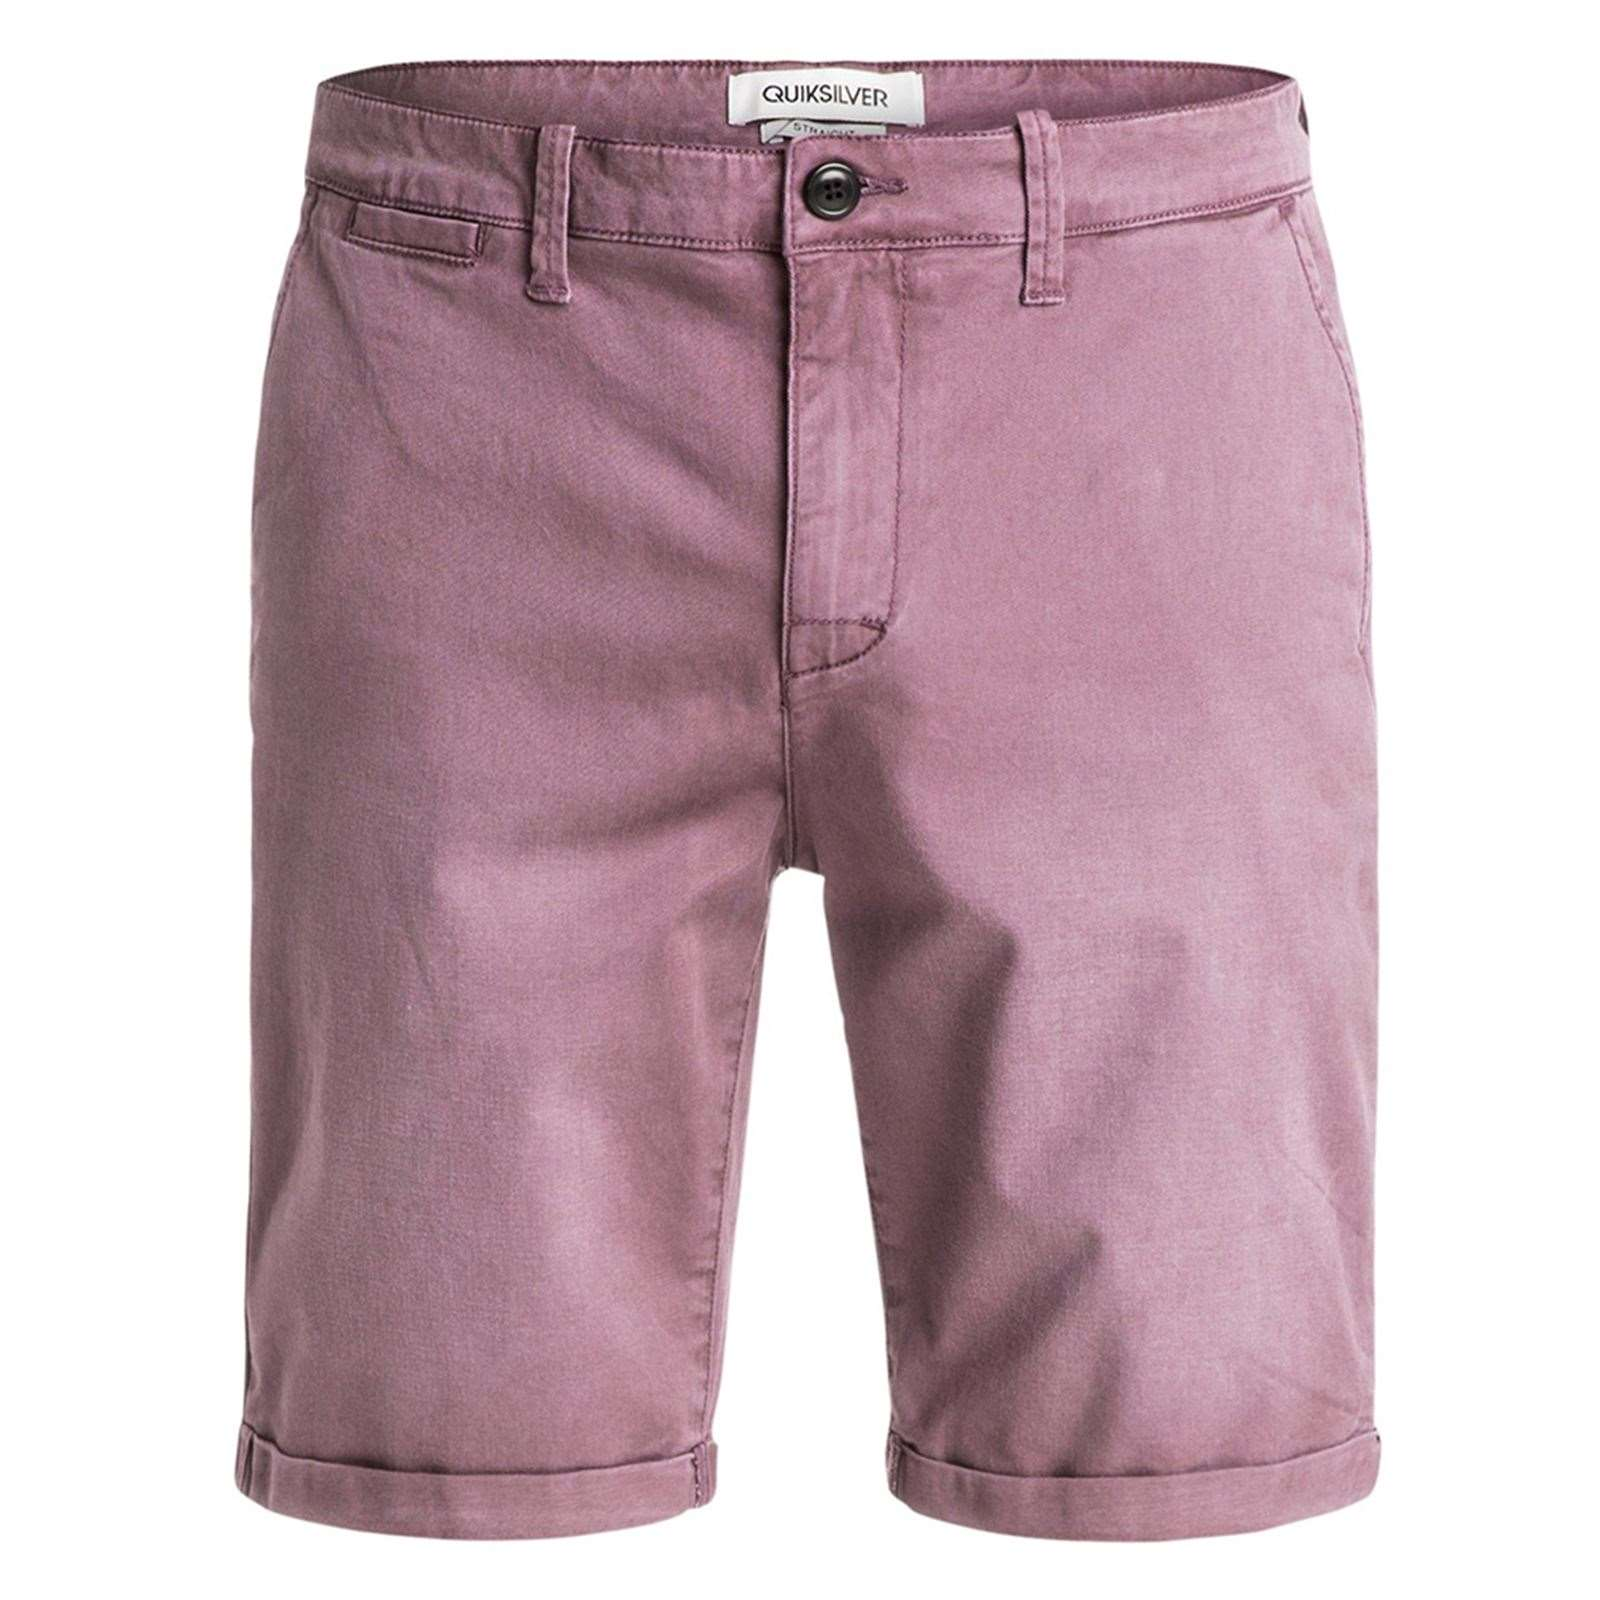 Krandy Rose Homme V ChinoShort Quiksilver HYeIED29W